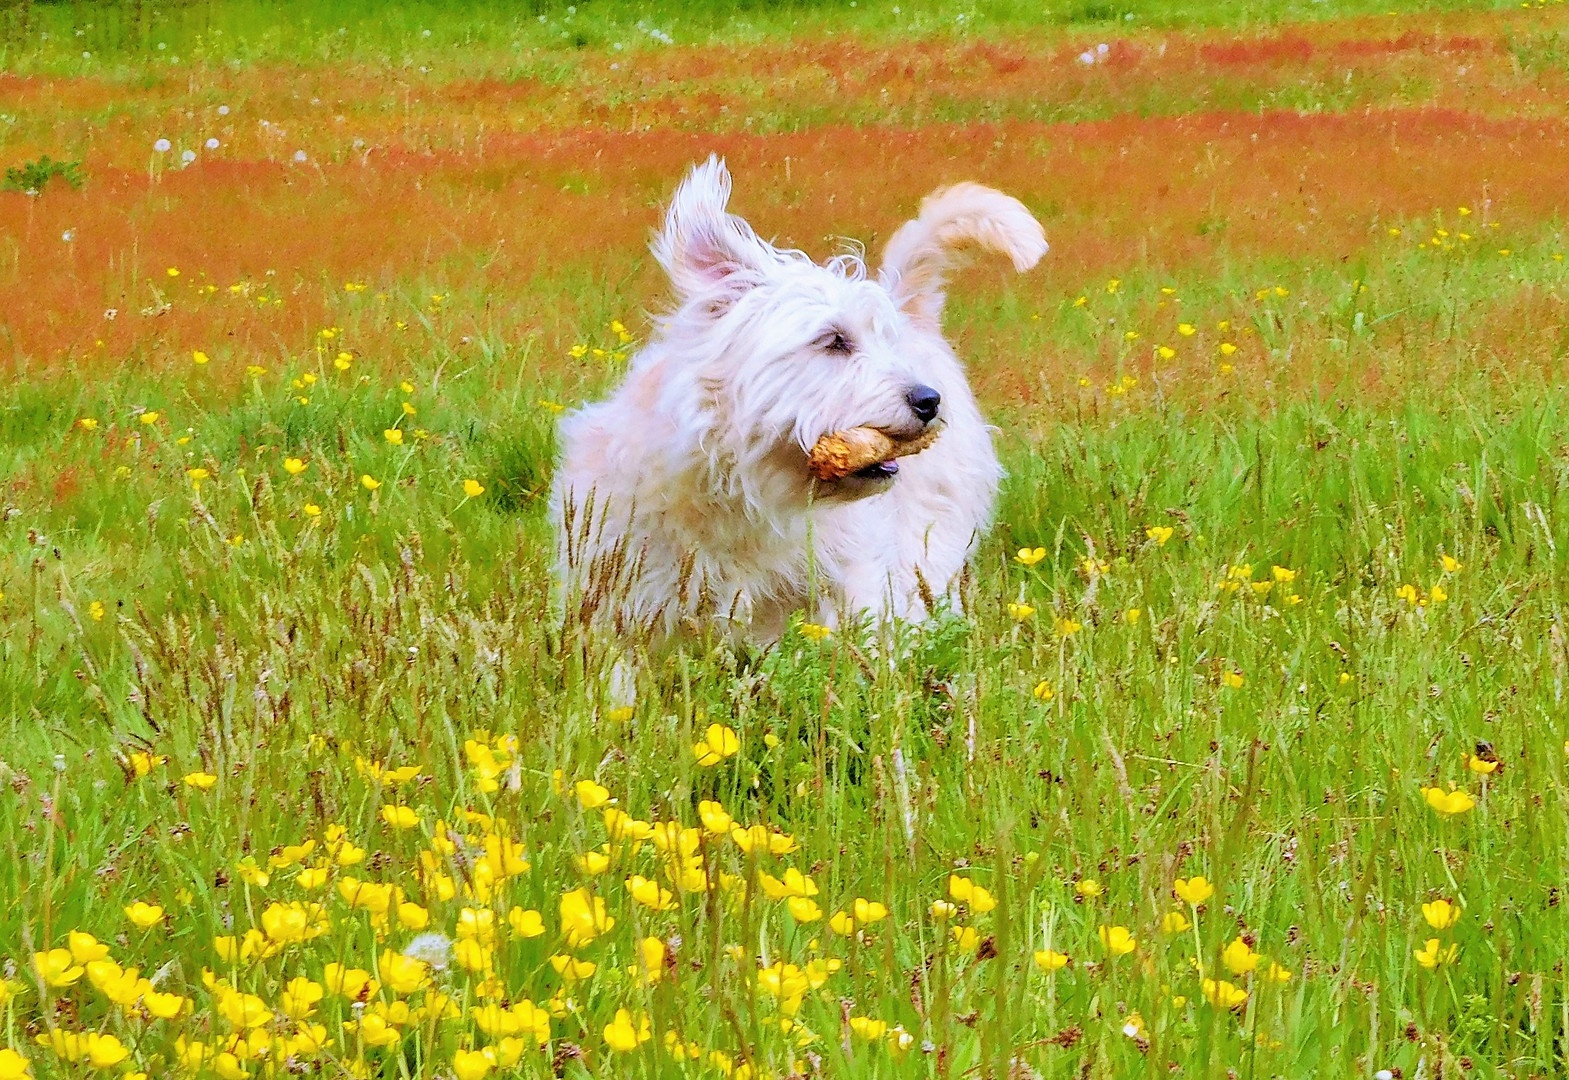 NETTLE AMONG THE BUTTERCUPS